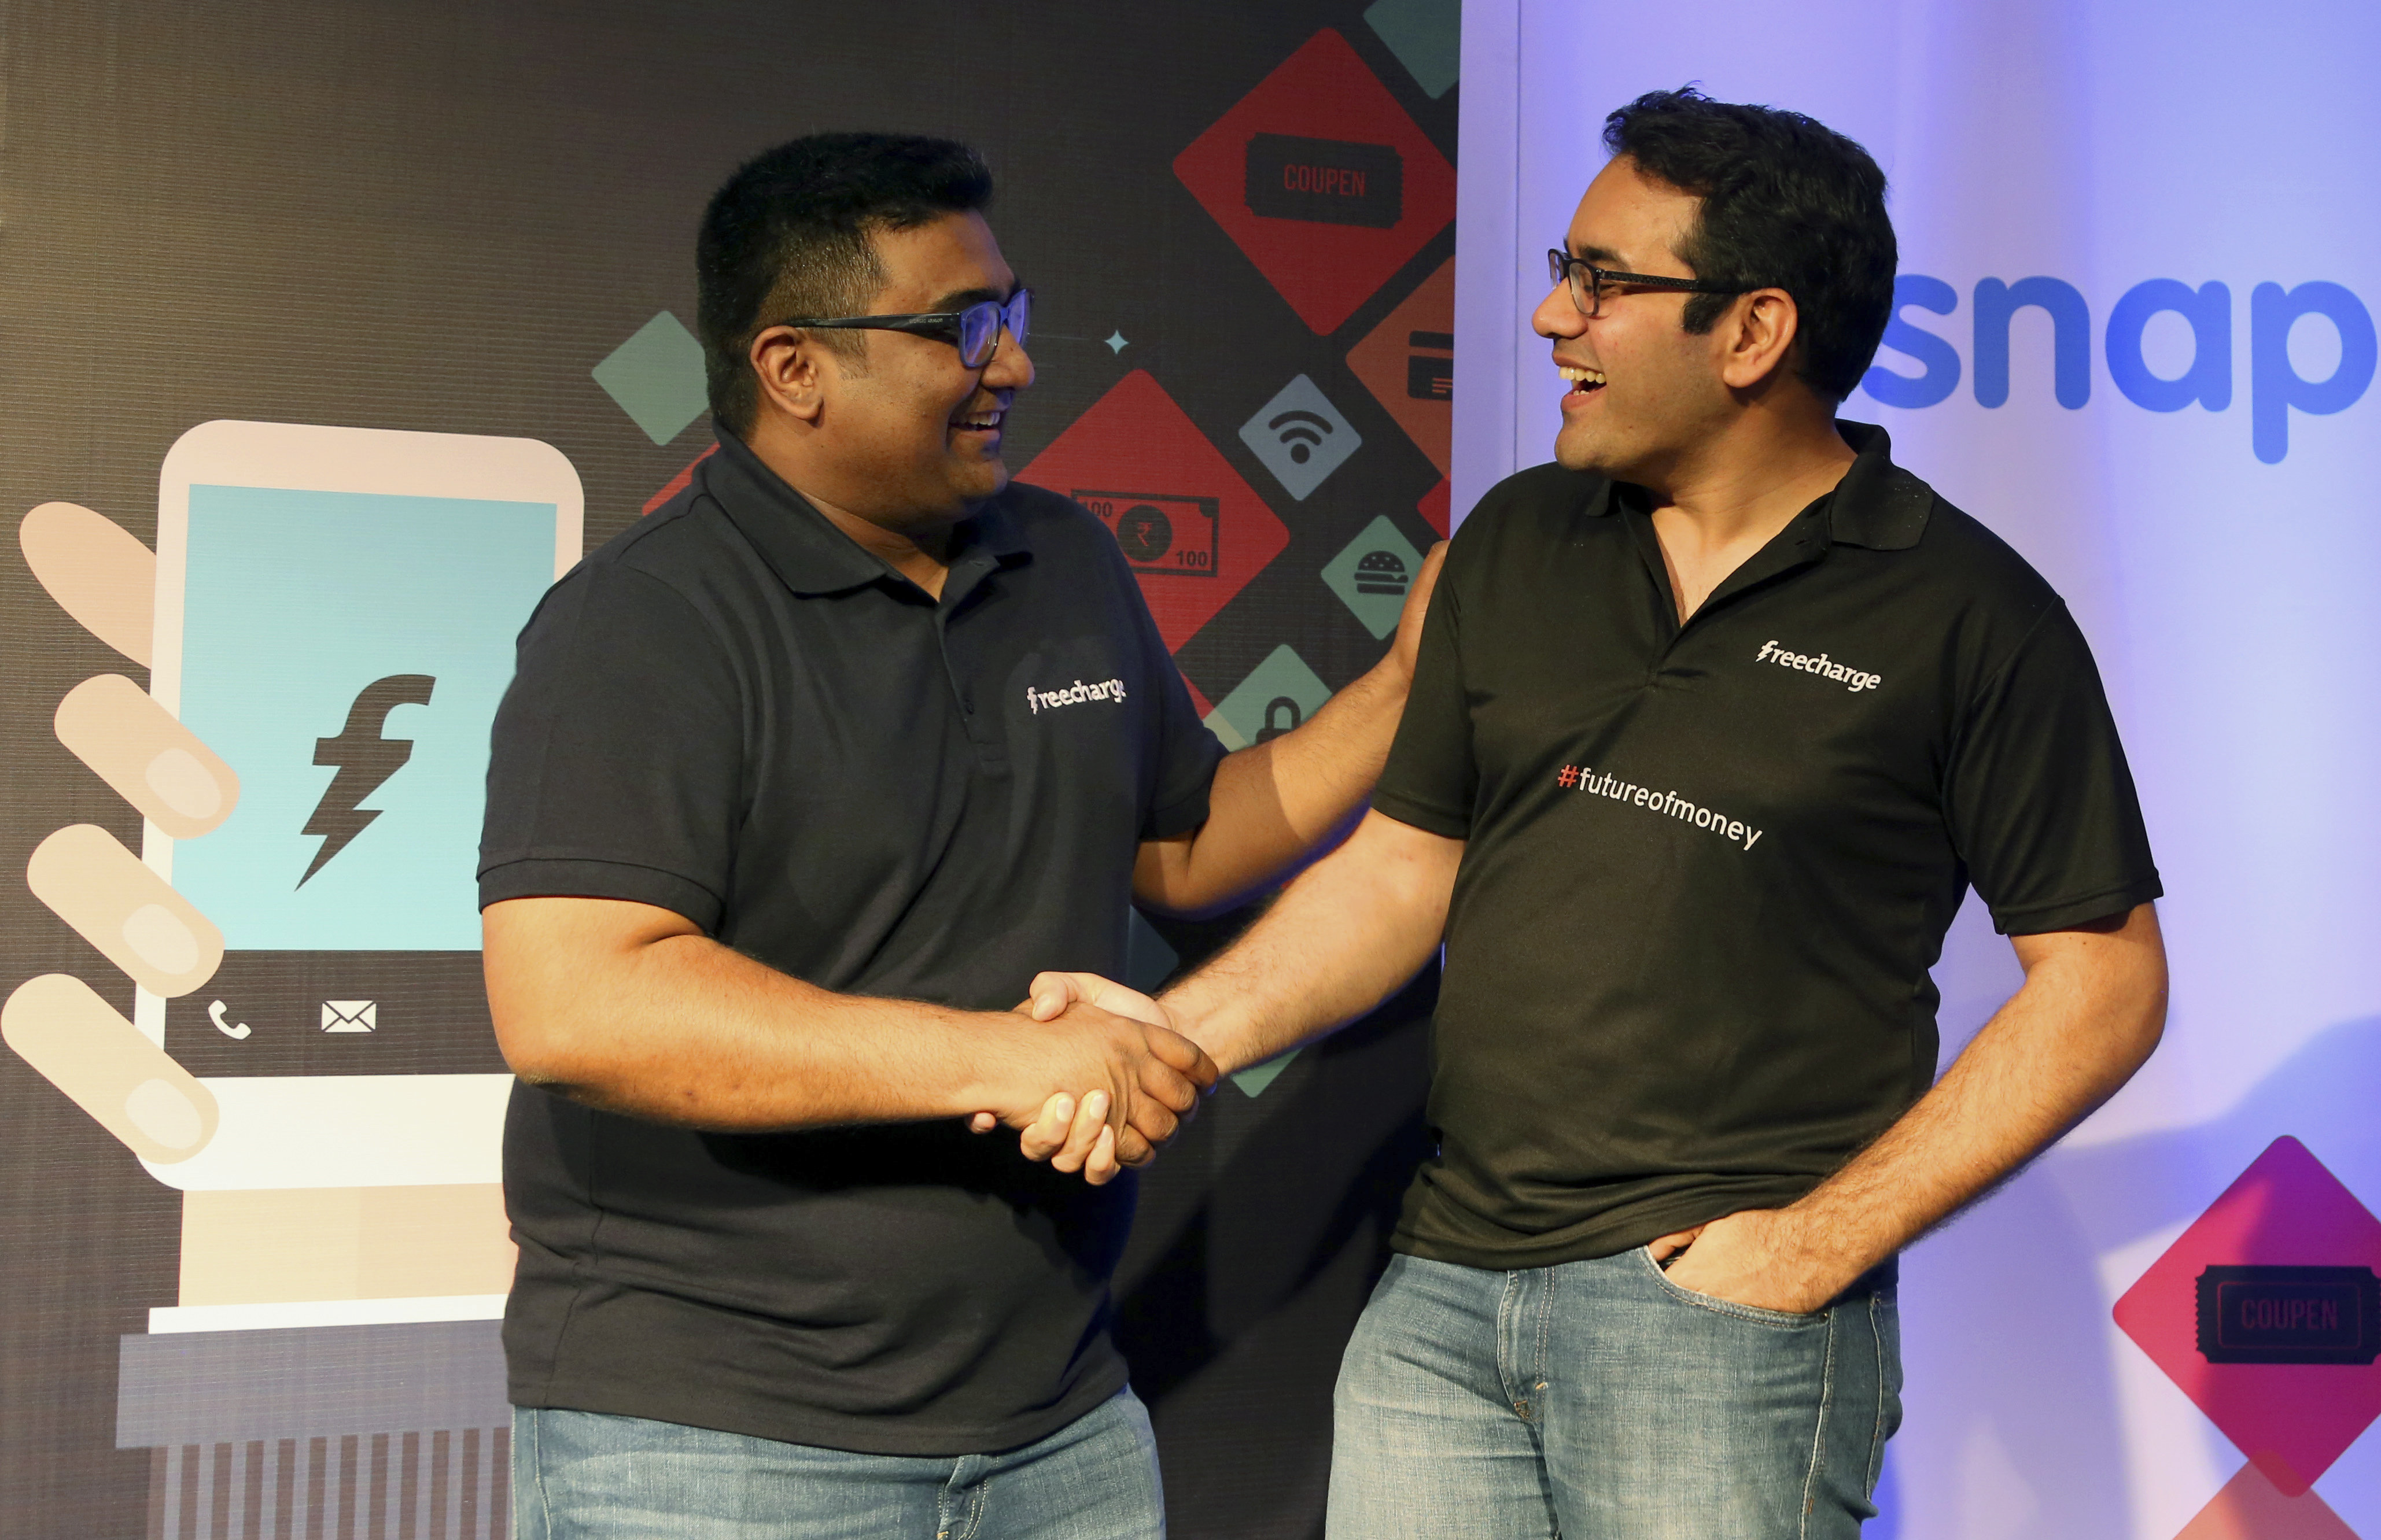 Kunal Bahl, right, co-founder and Chief Executive Officer (CEO) of Snapdeal and Kunal Shah co-founder and CEO of FreeCharge share a laugh after the launch of Digital Wallet in Bangalore, India